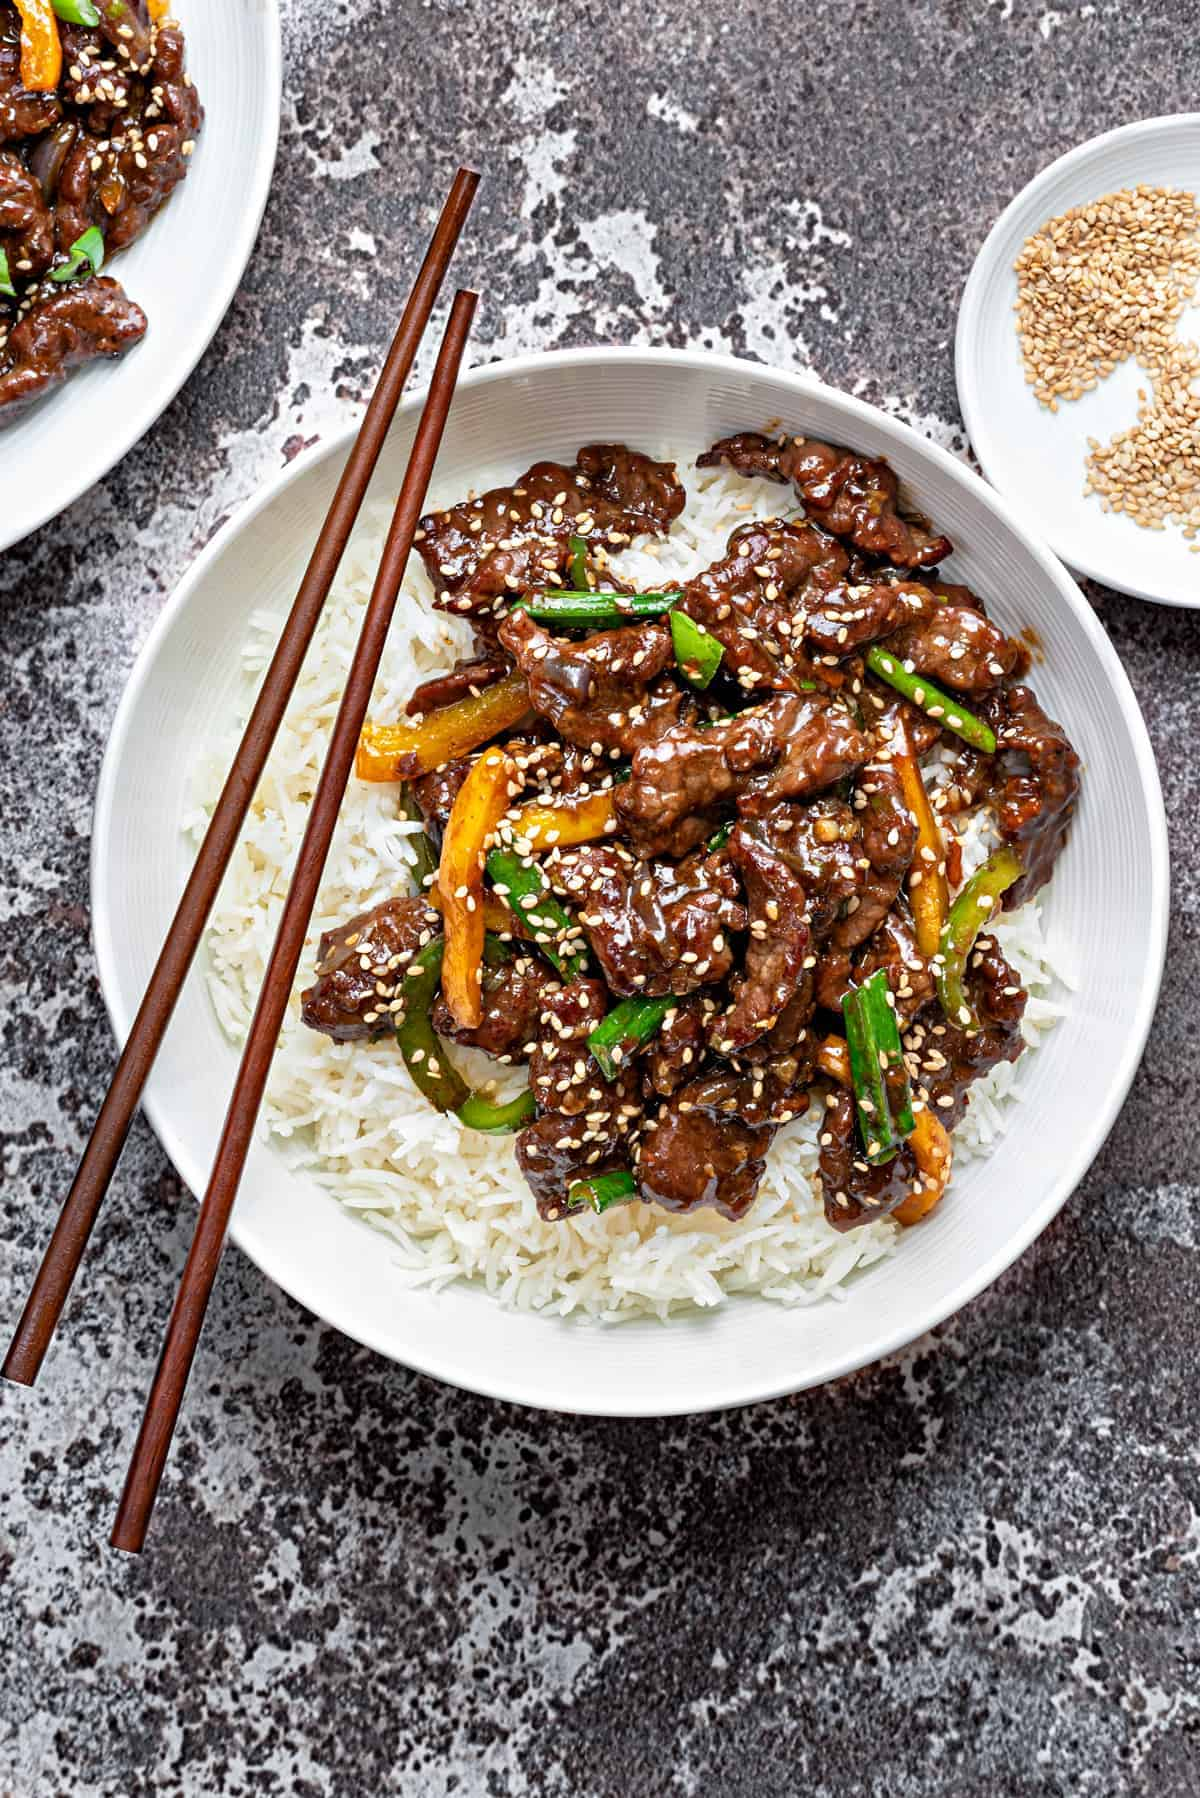 Chinese style beef stir fry over white rice in a white bowl with wooden chopsticks